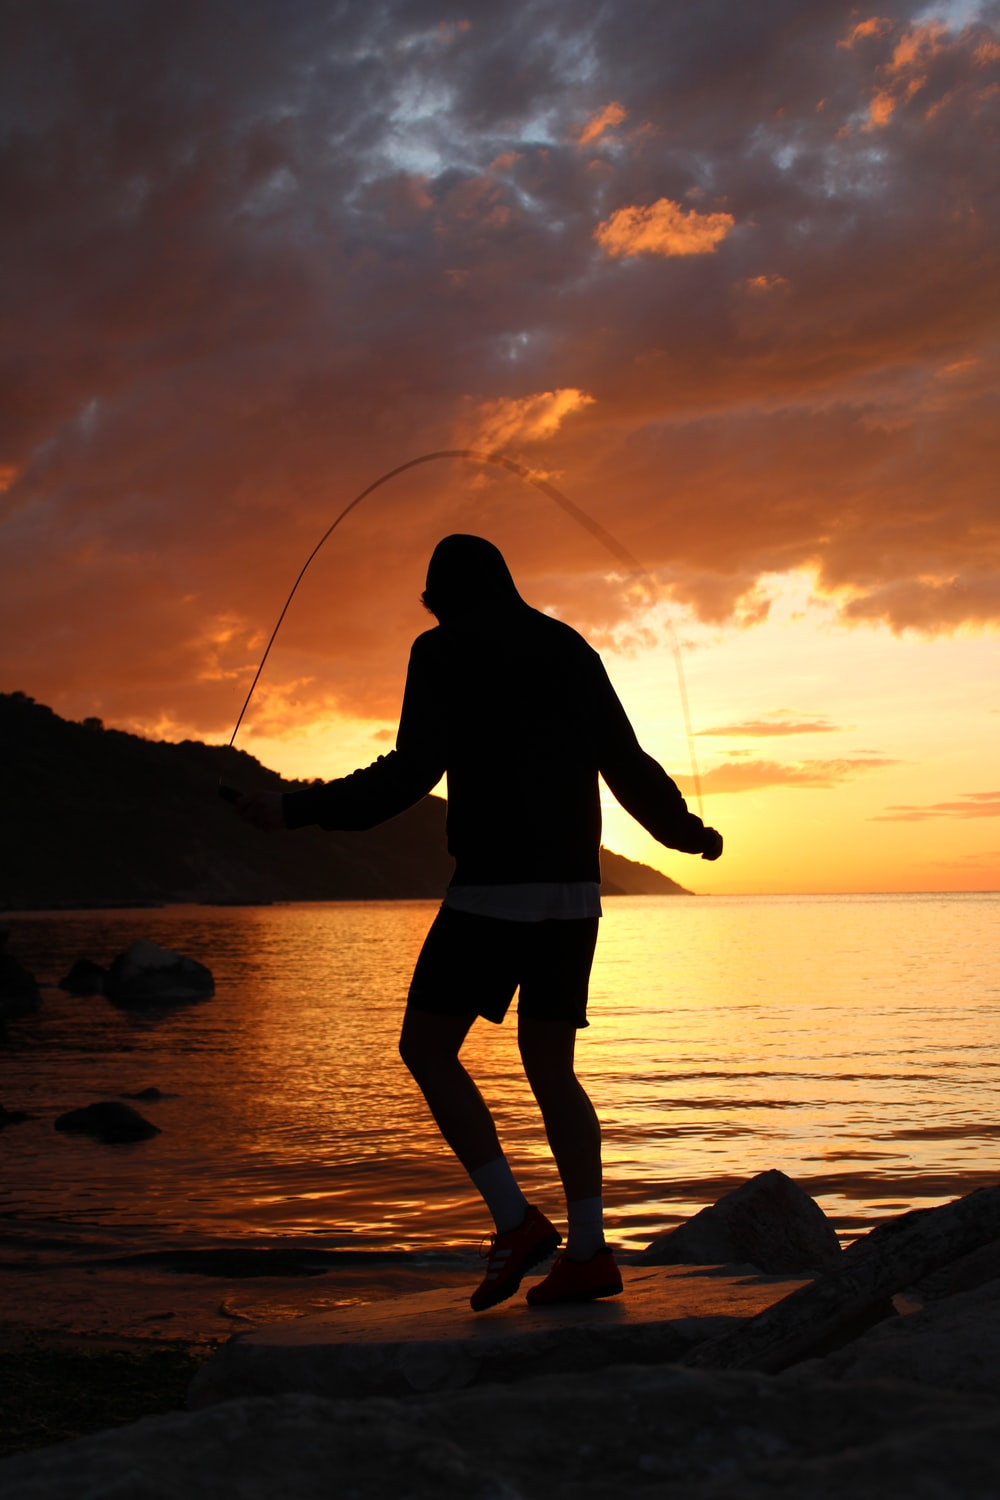 silhouette of man holding fishing rod standing on seashore during sunset